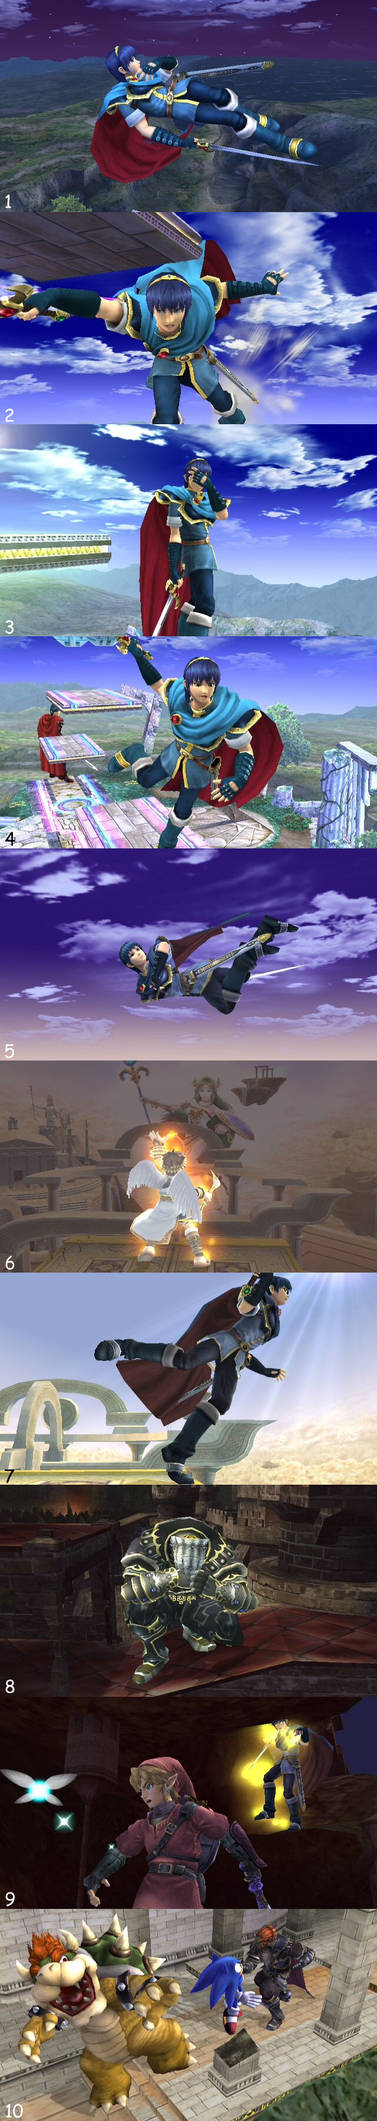 Brawl Screenshots